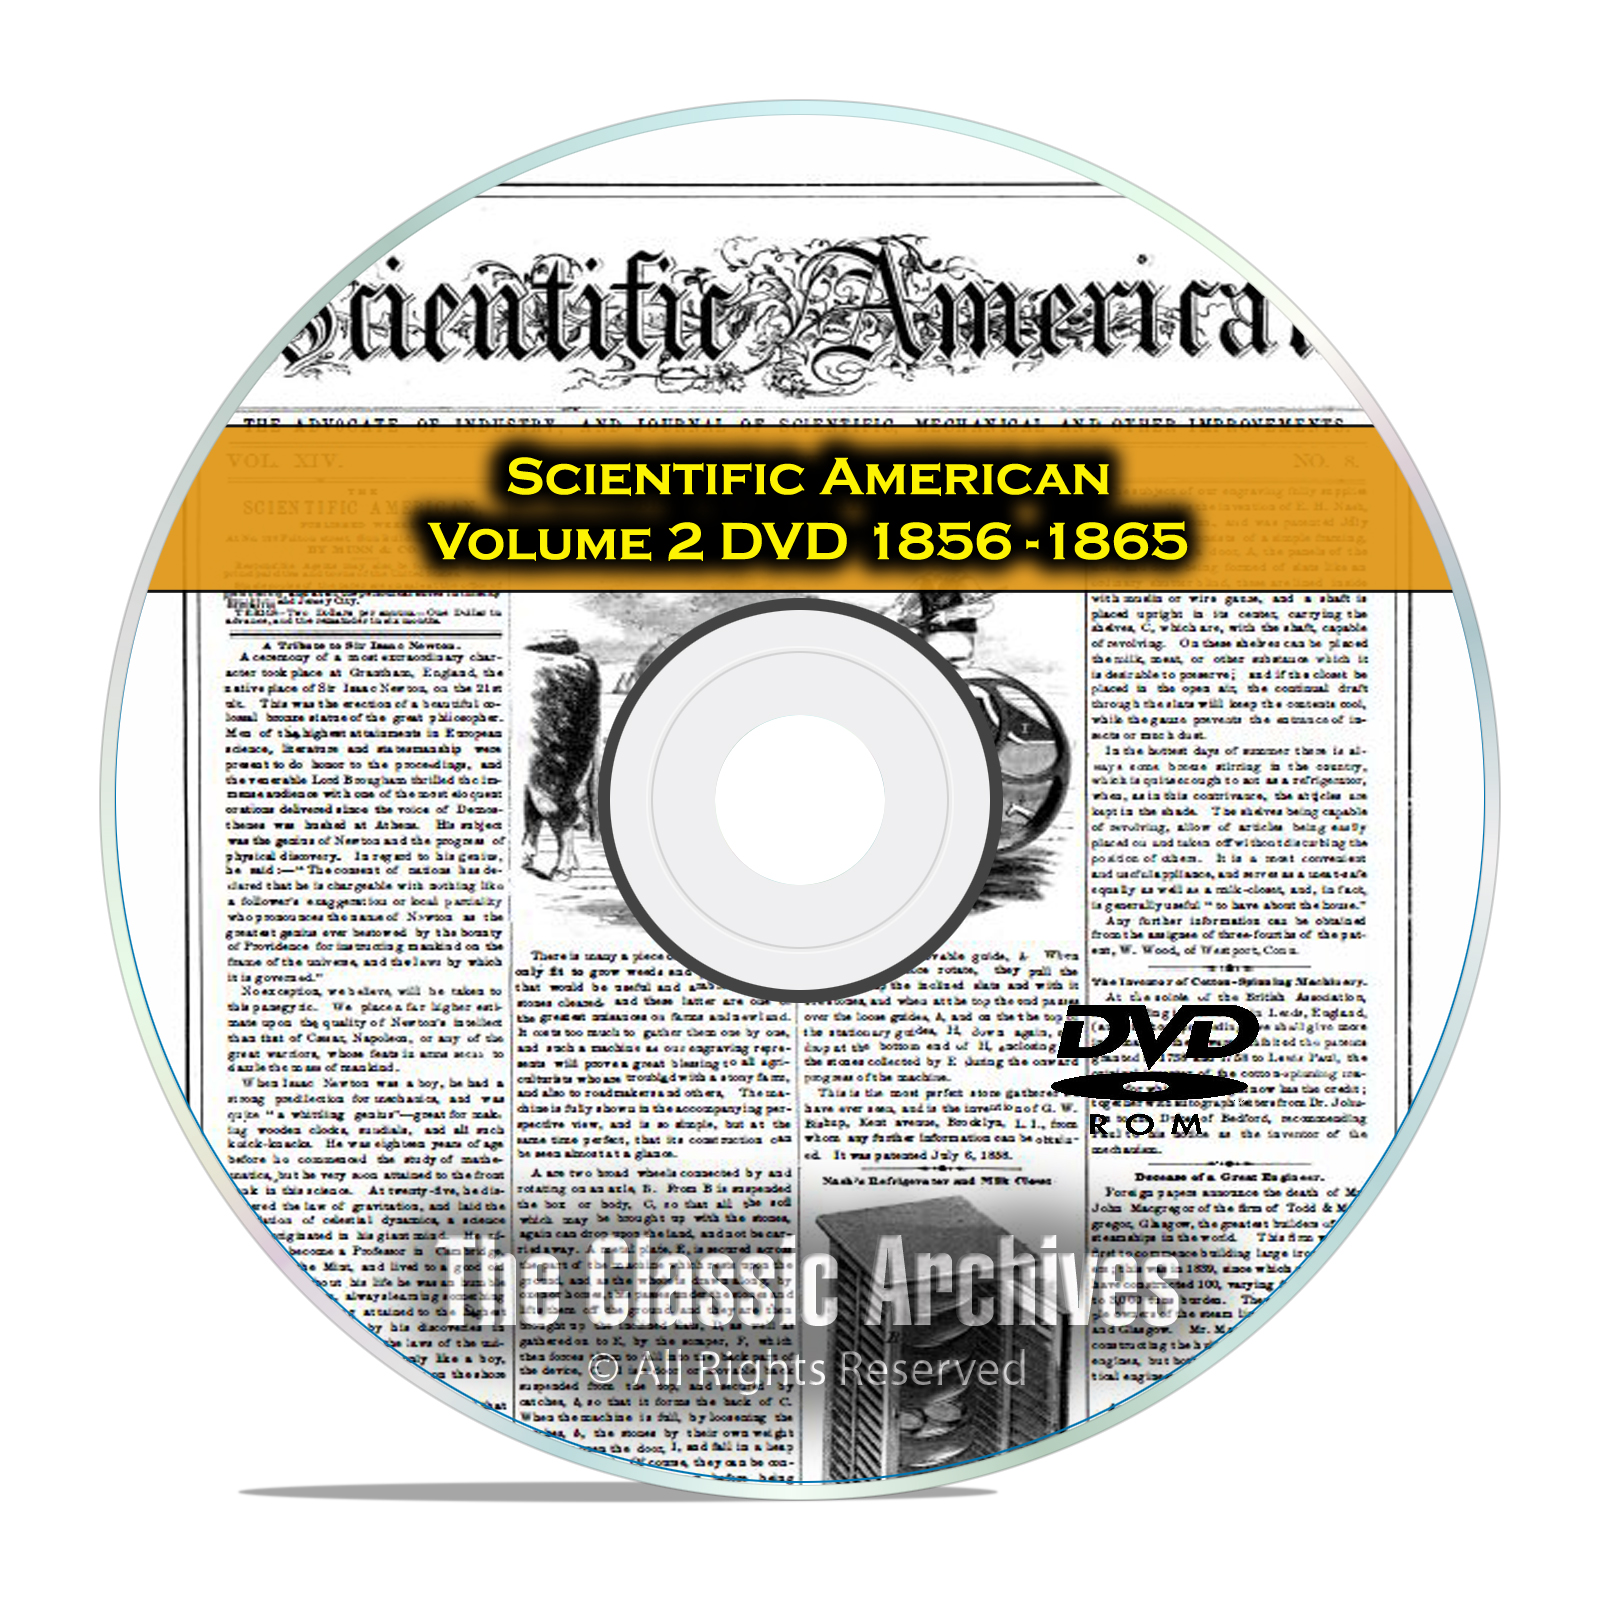 Scientific American, 484 Back Issues, 1856-1865, Vol 2, Inventions, PDF DVD